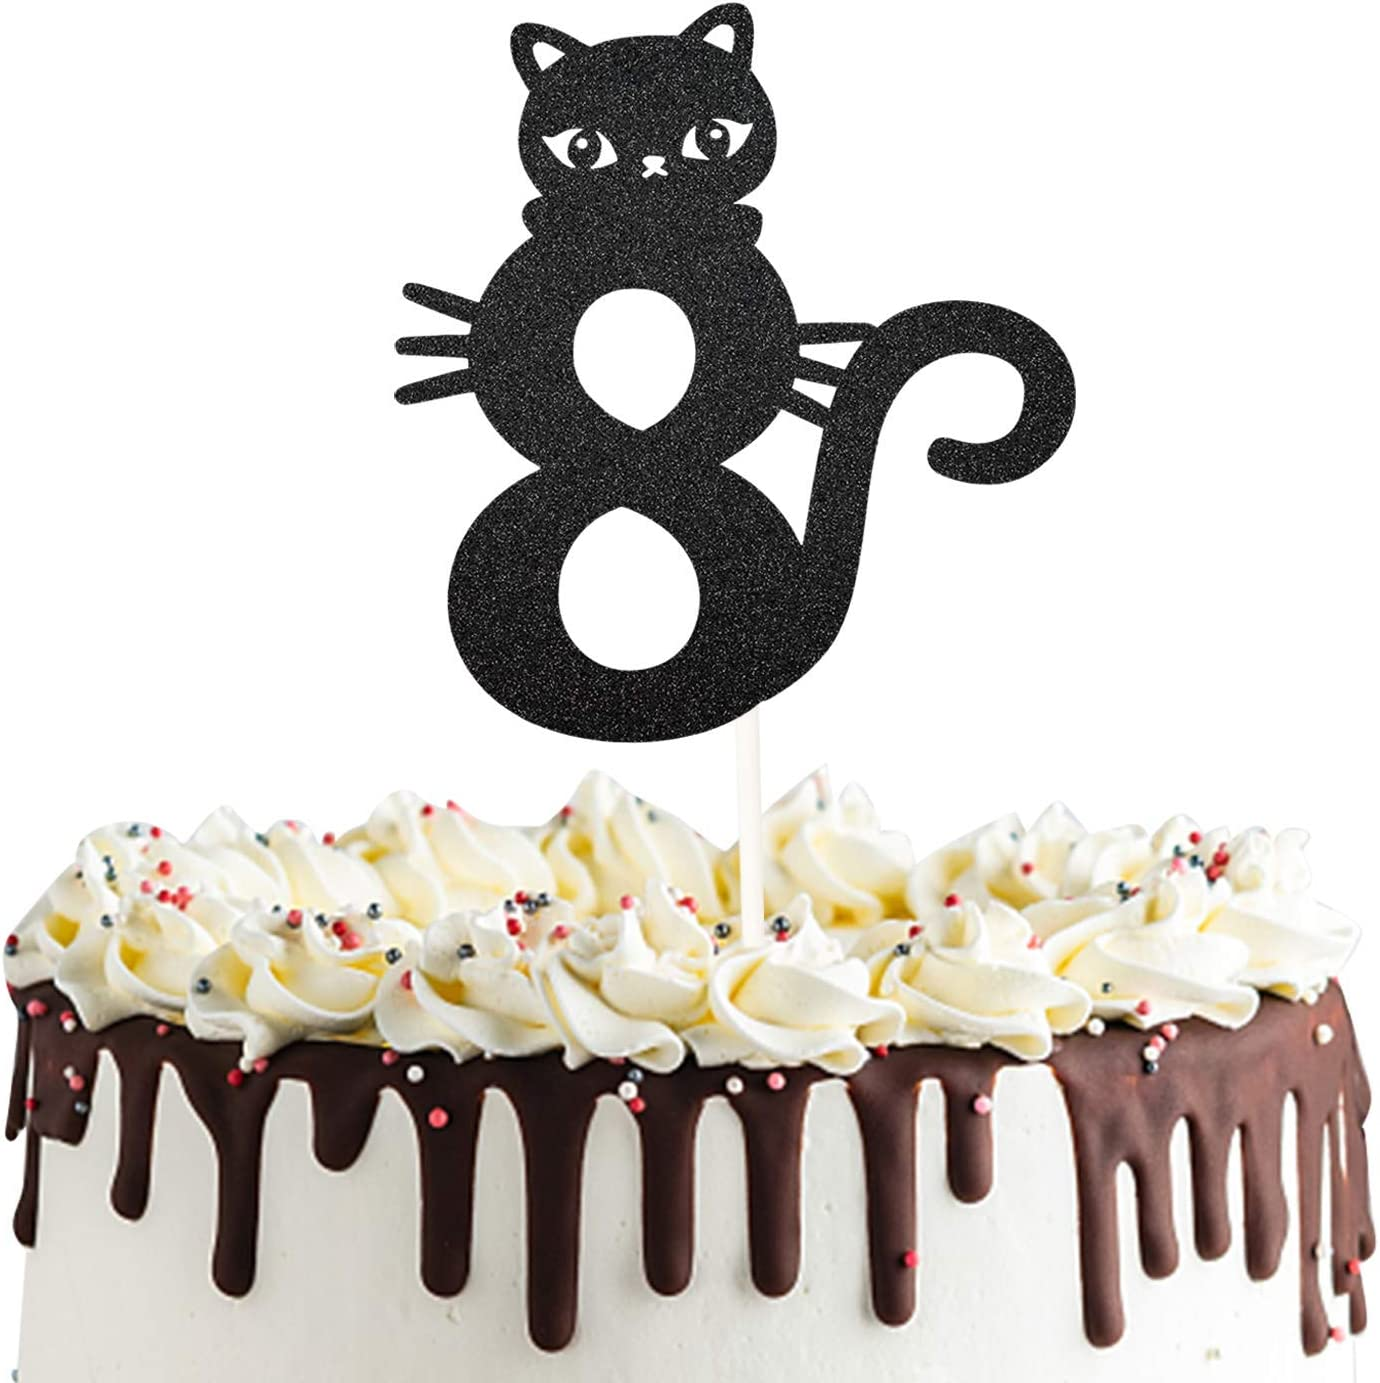 Number 8 Kitty Cat Cake Topper for Happy Eighth 8th Birthday,Baby Shower 8th Wedding Anniversary Party Decorations